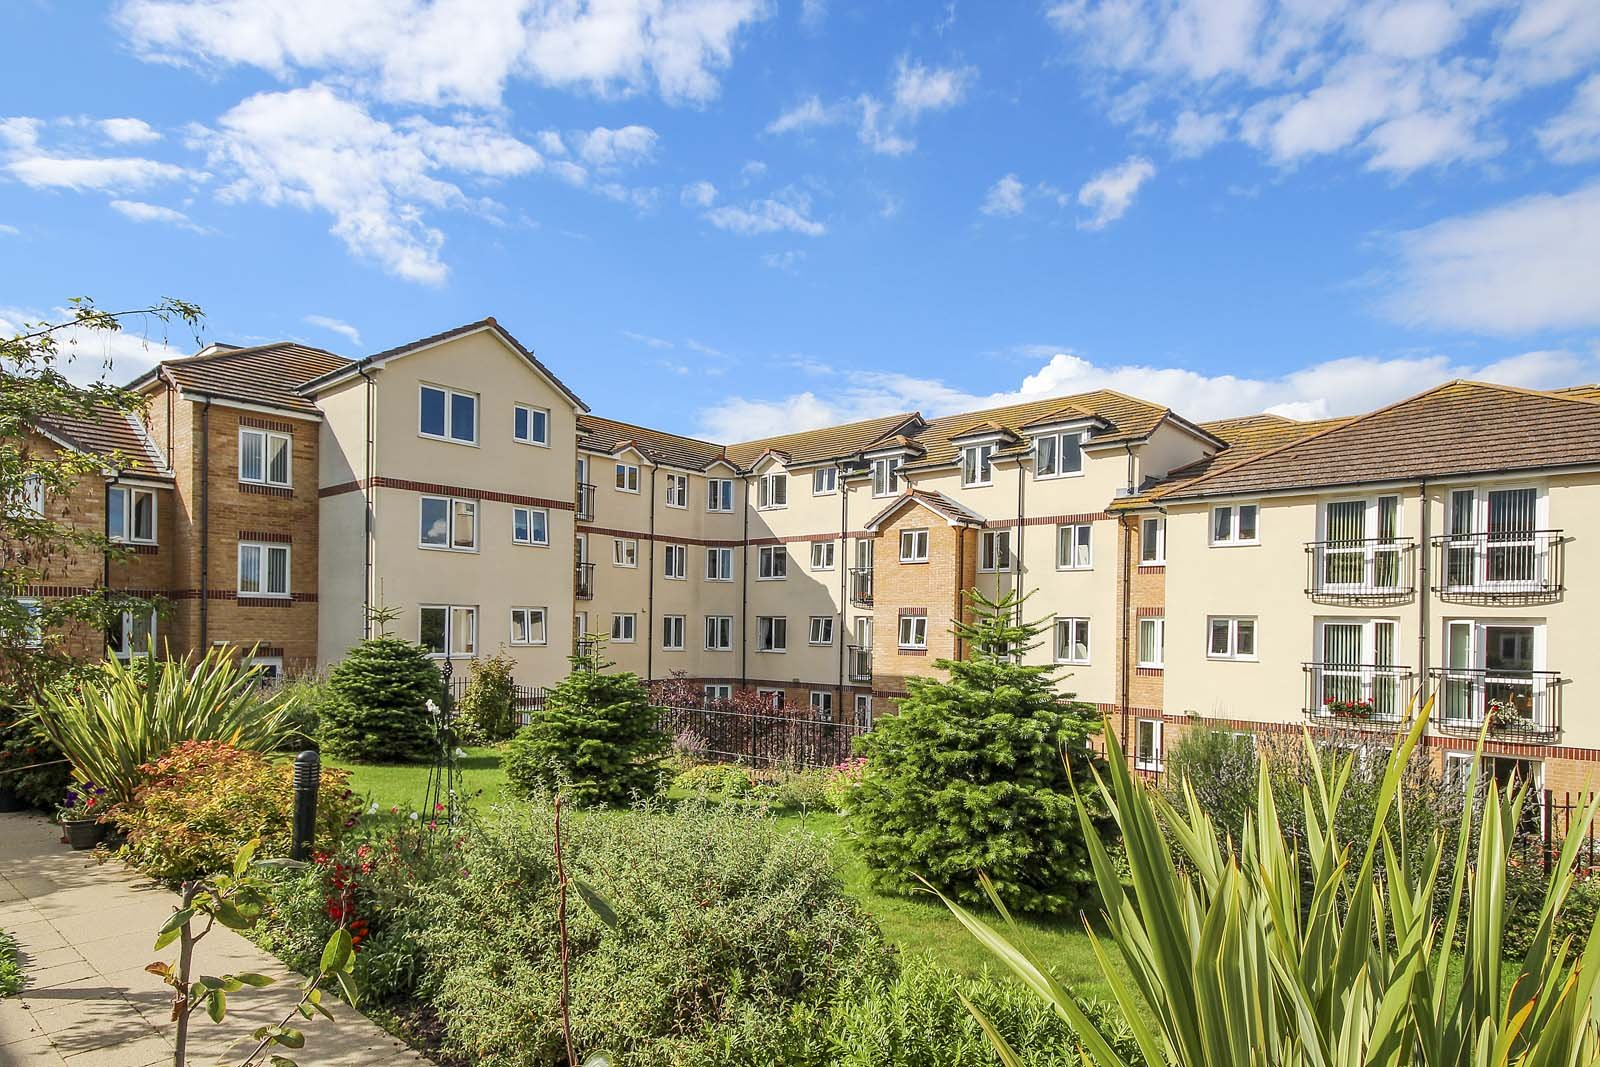 2 bed apartment for sale in East Preston, BN16